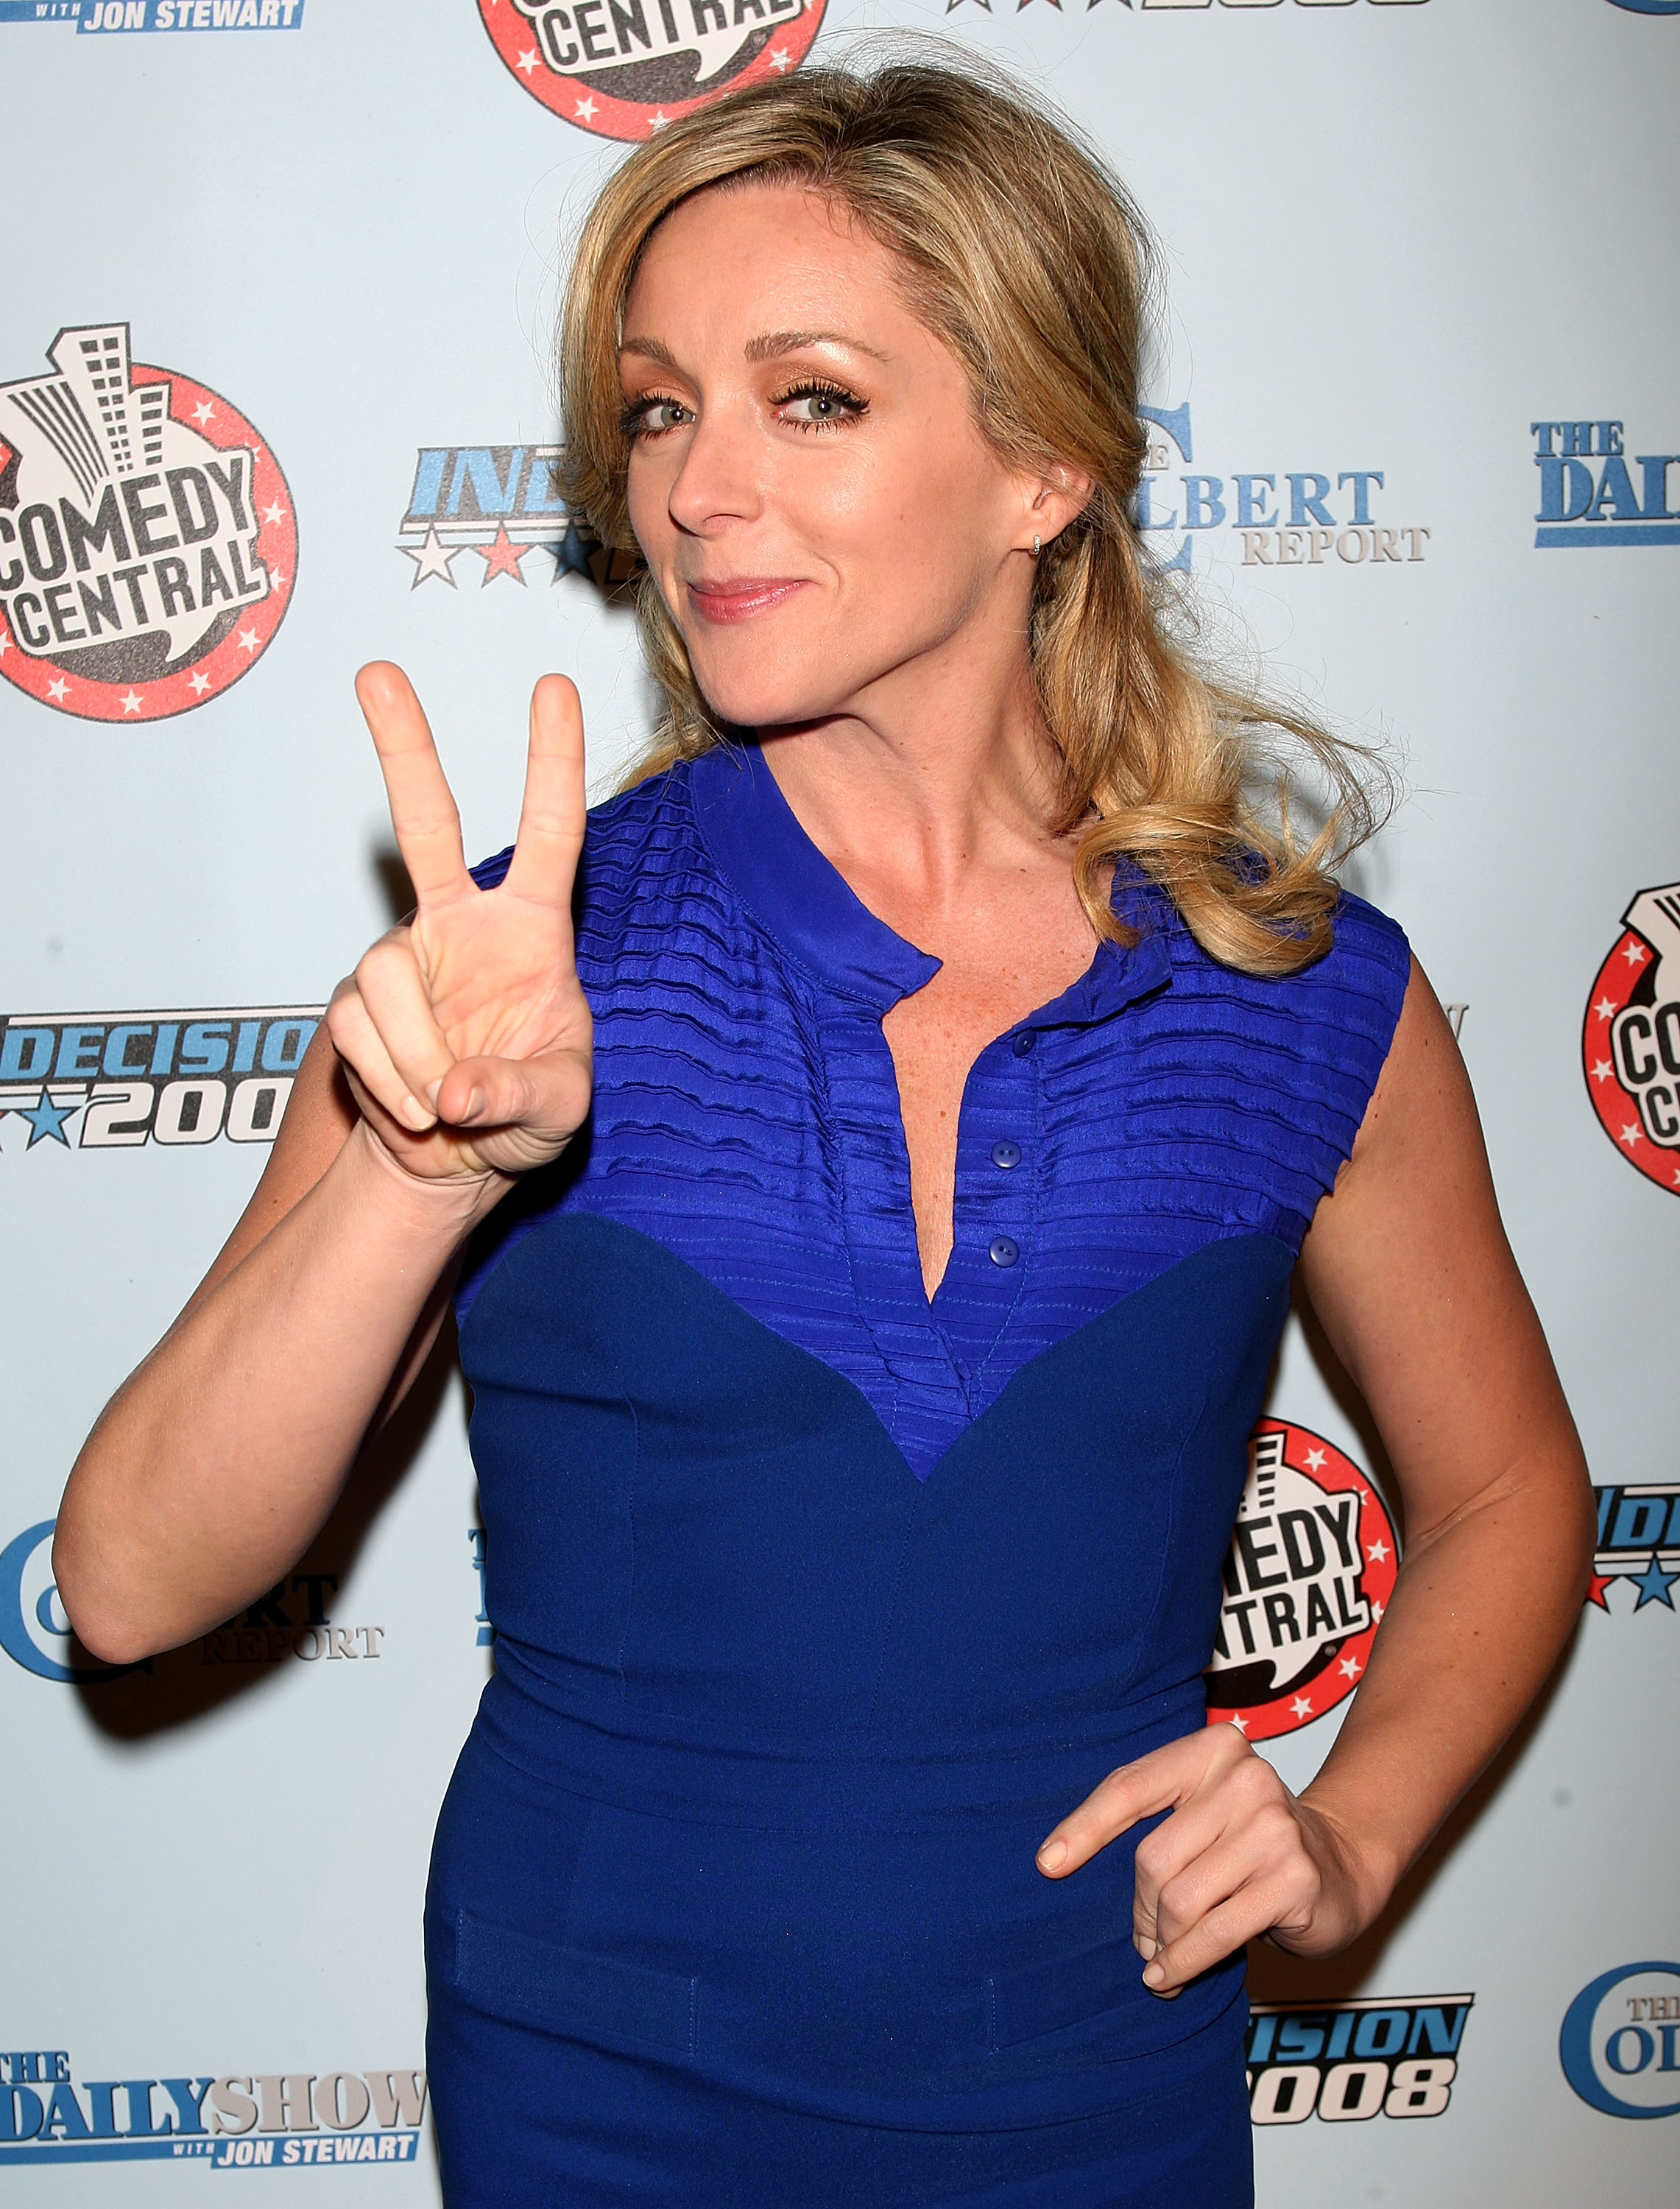 67787_Celebutopia-Jane_Krakowski-Comedy_Central1s_Indecision_2008_Election_Night_viewing_party-04_122_422lo.jpg